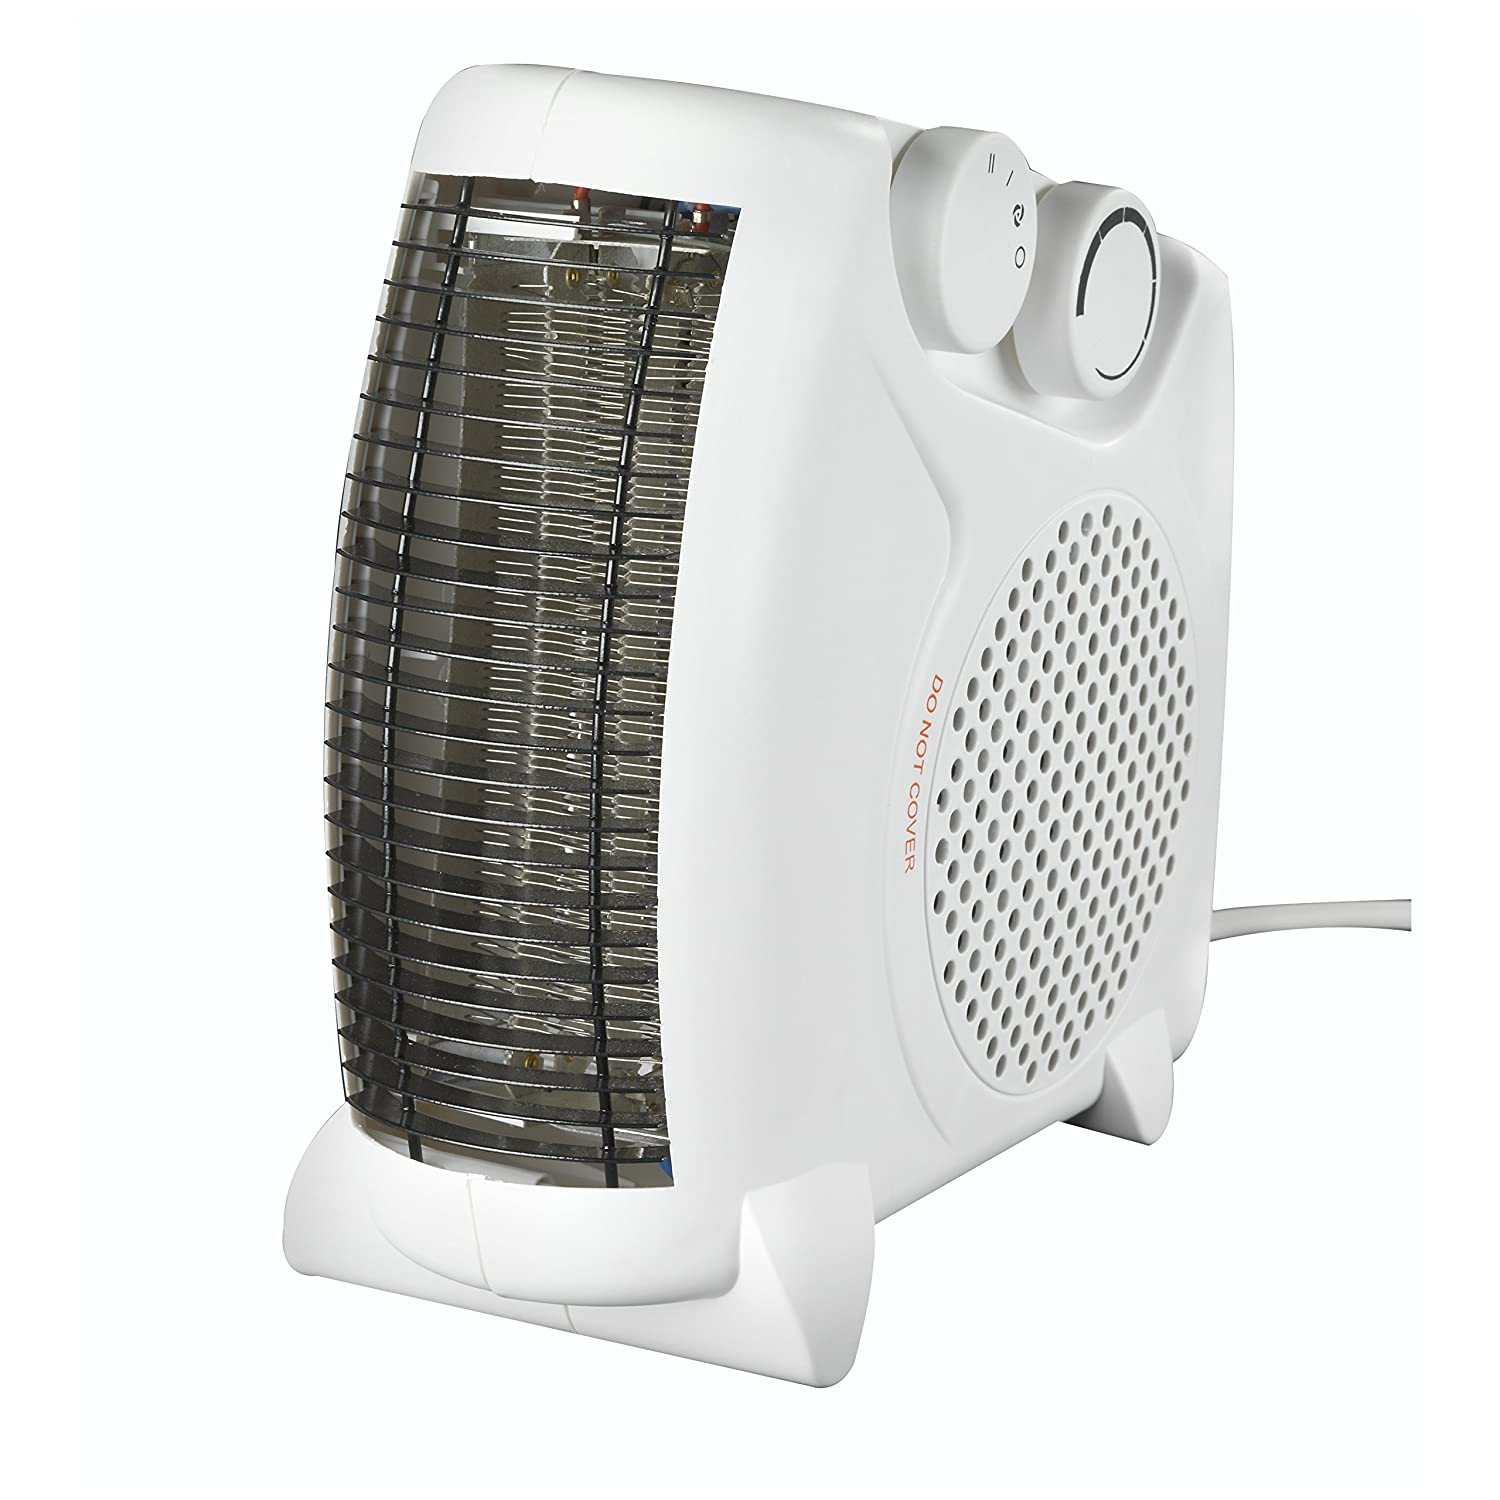 Beldray EH0569SSTK Flat Fan Heater and Cooler, 2000 W